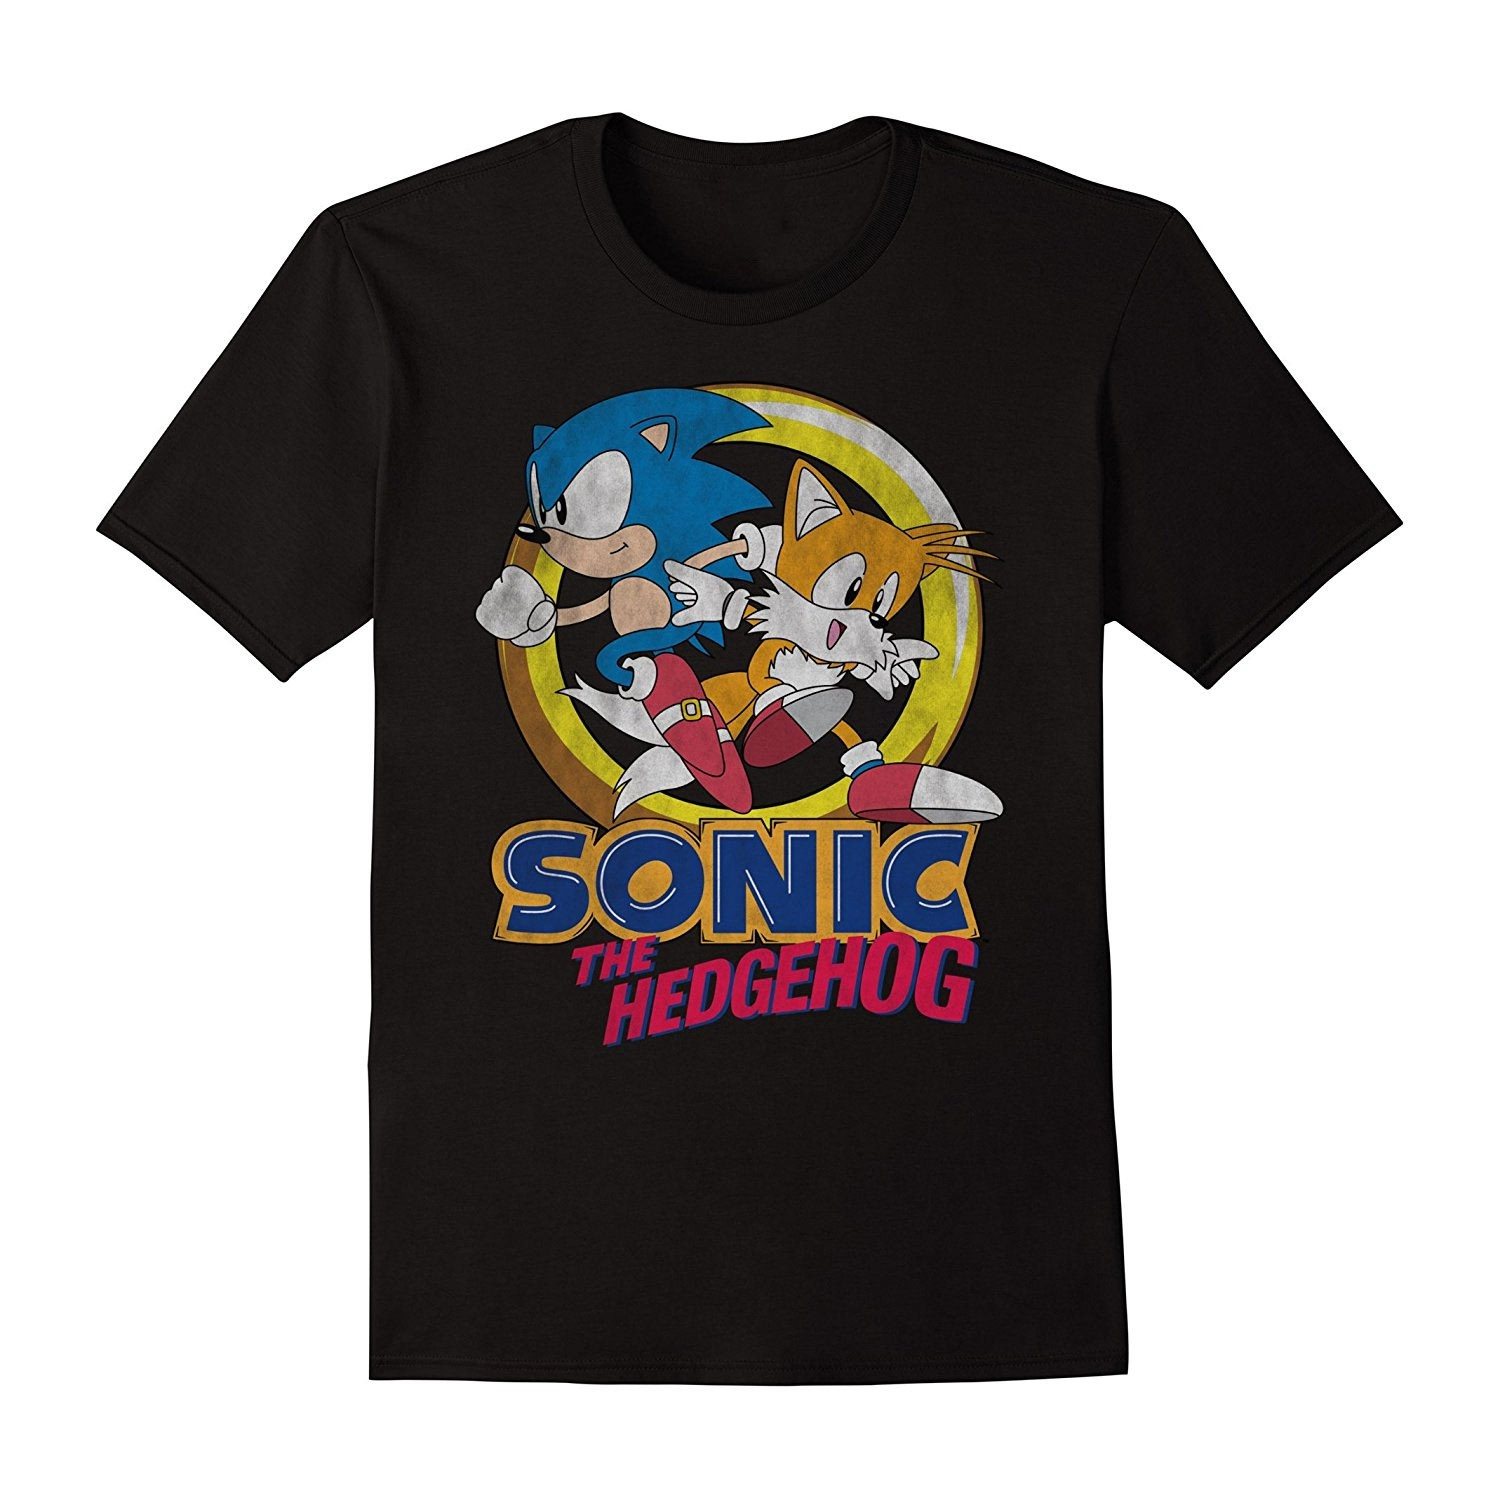 Sonic The Hedgehog And Tails Boys 8-20 Youth Black Tee Shirt